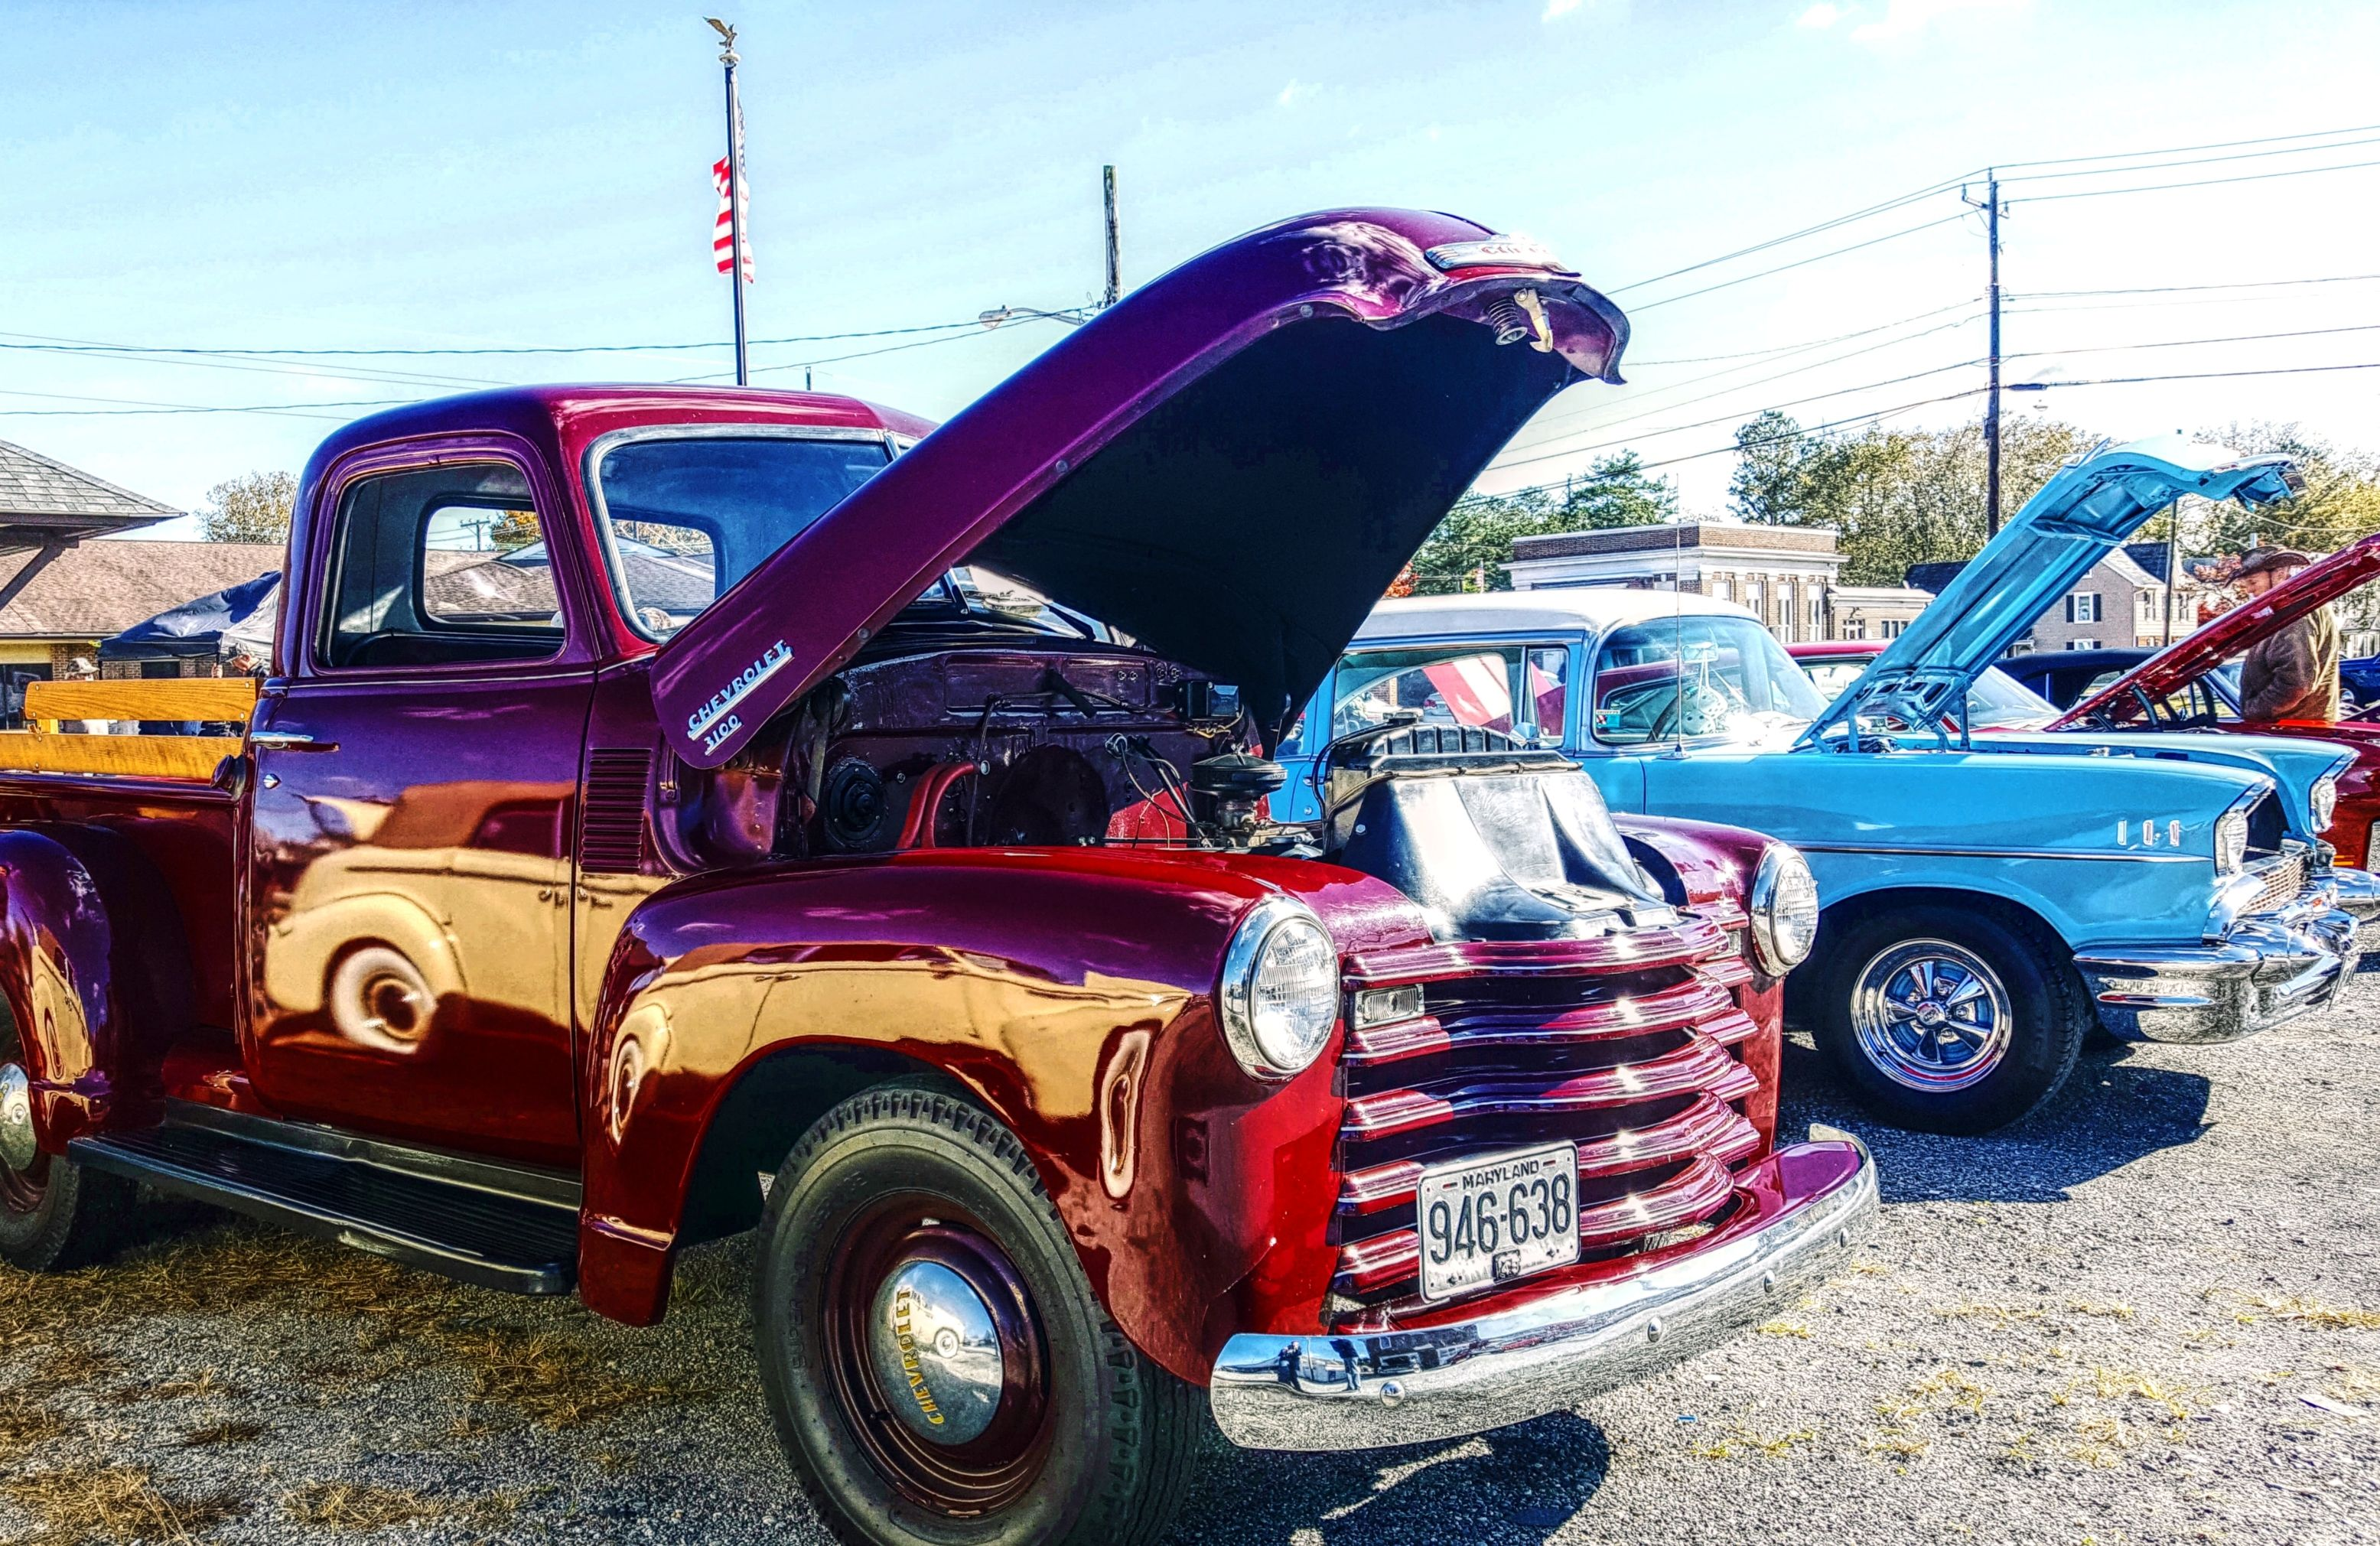 Old Truck At A Car Show In Hebron Maryland